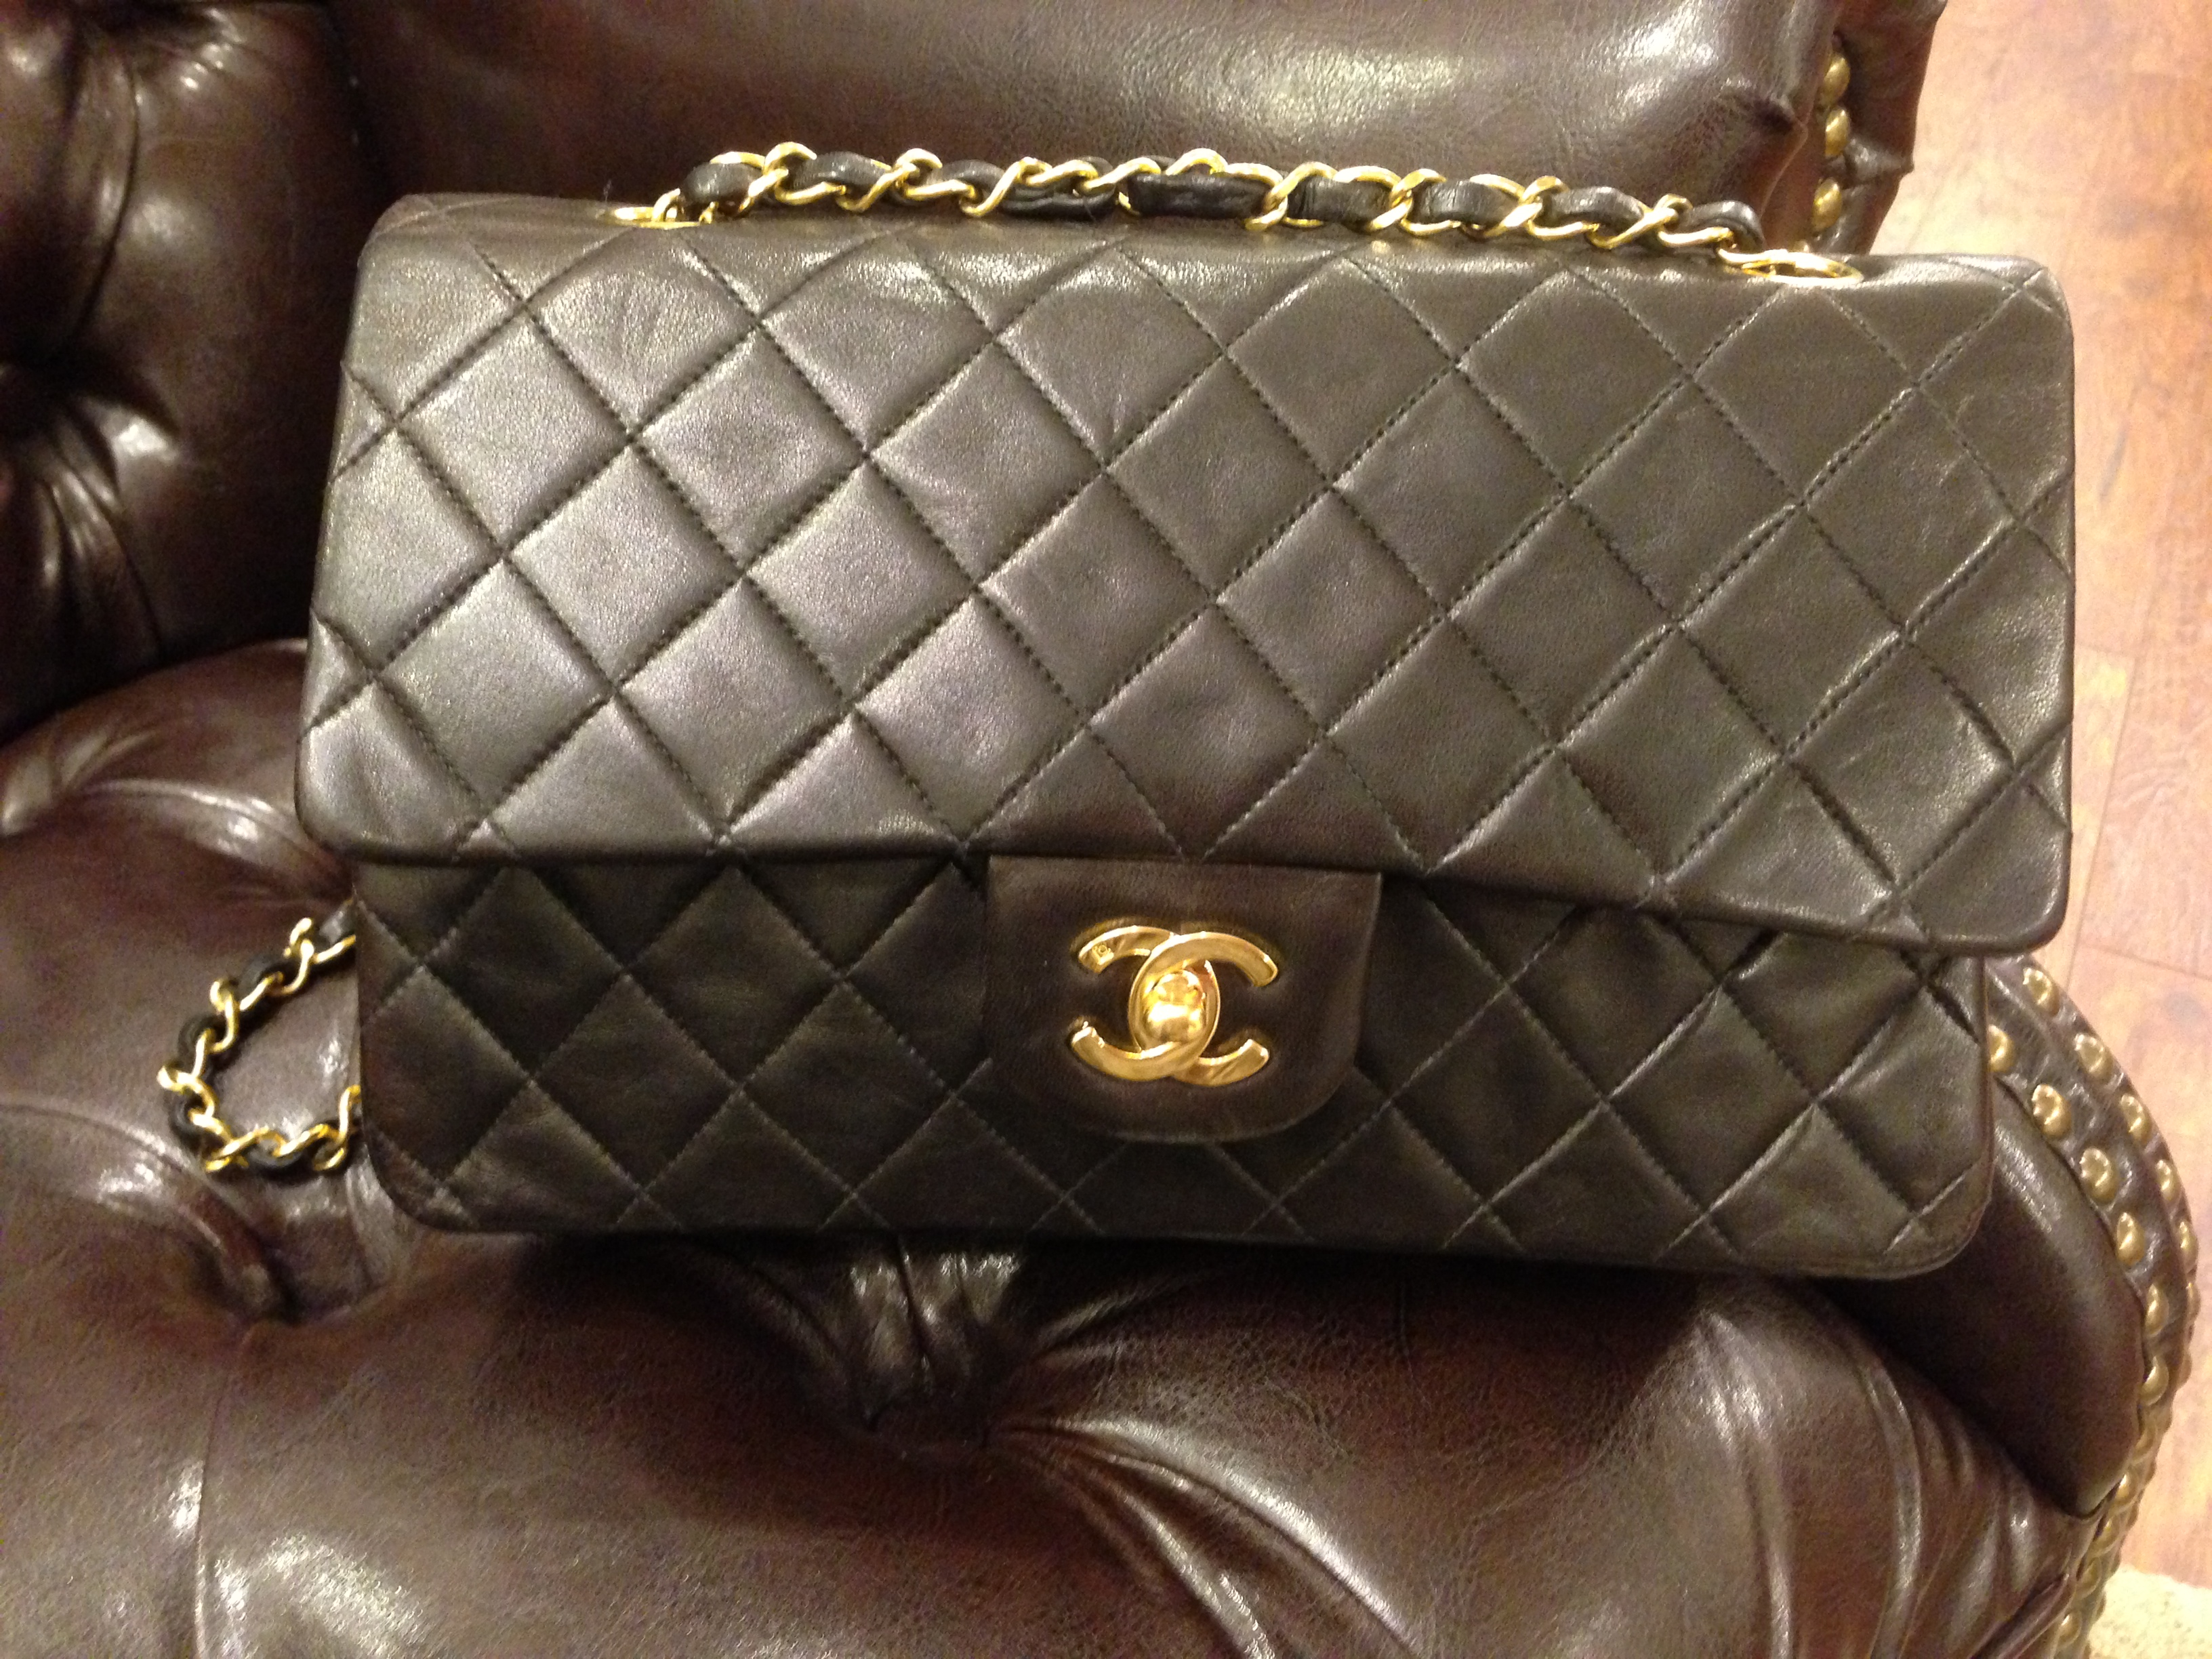 Chanel handbag superb vintage chanel bag vintage leather - This Is An Outstanding Vintage Chanel 2 55 In Superb Condition 9 10 Its Lamb Quilted Lamb Skin With Gold Plated Chain The Interior Of The Bag Has Been